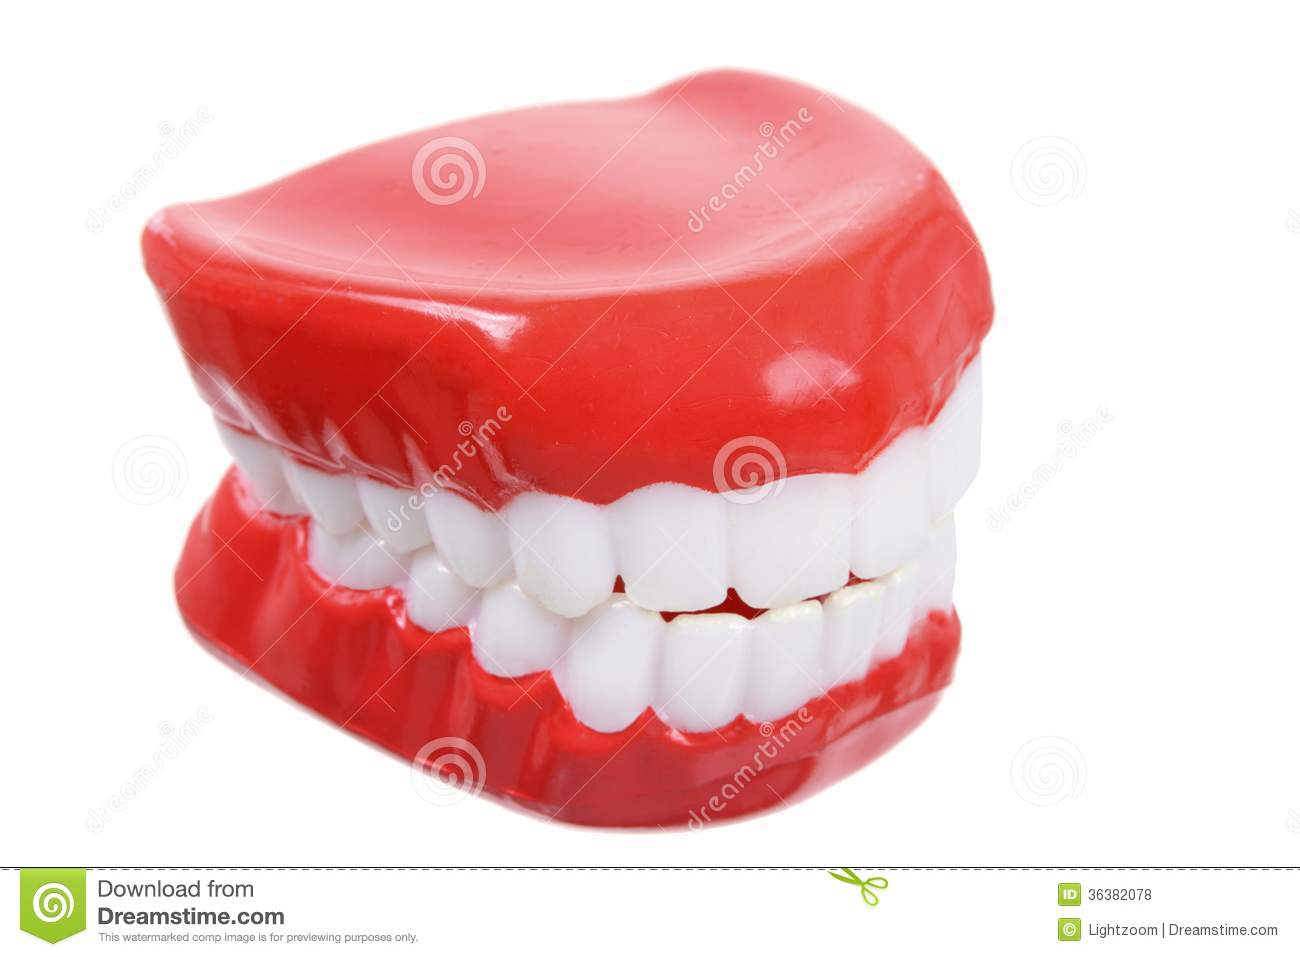 Fake Teeth Royalty Free Stock Photos - Image: 36382078